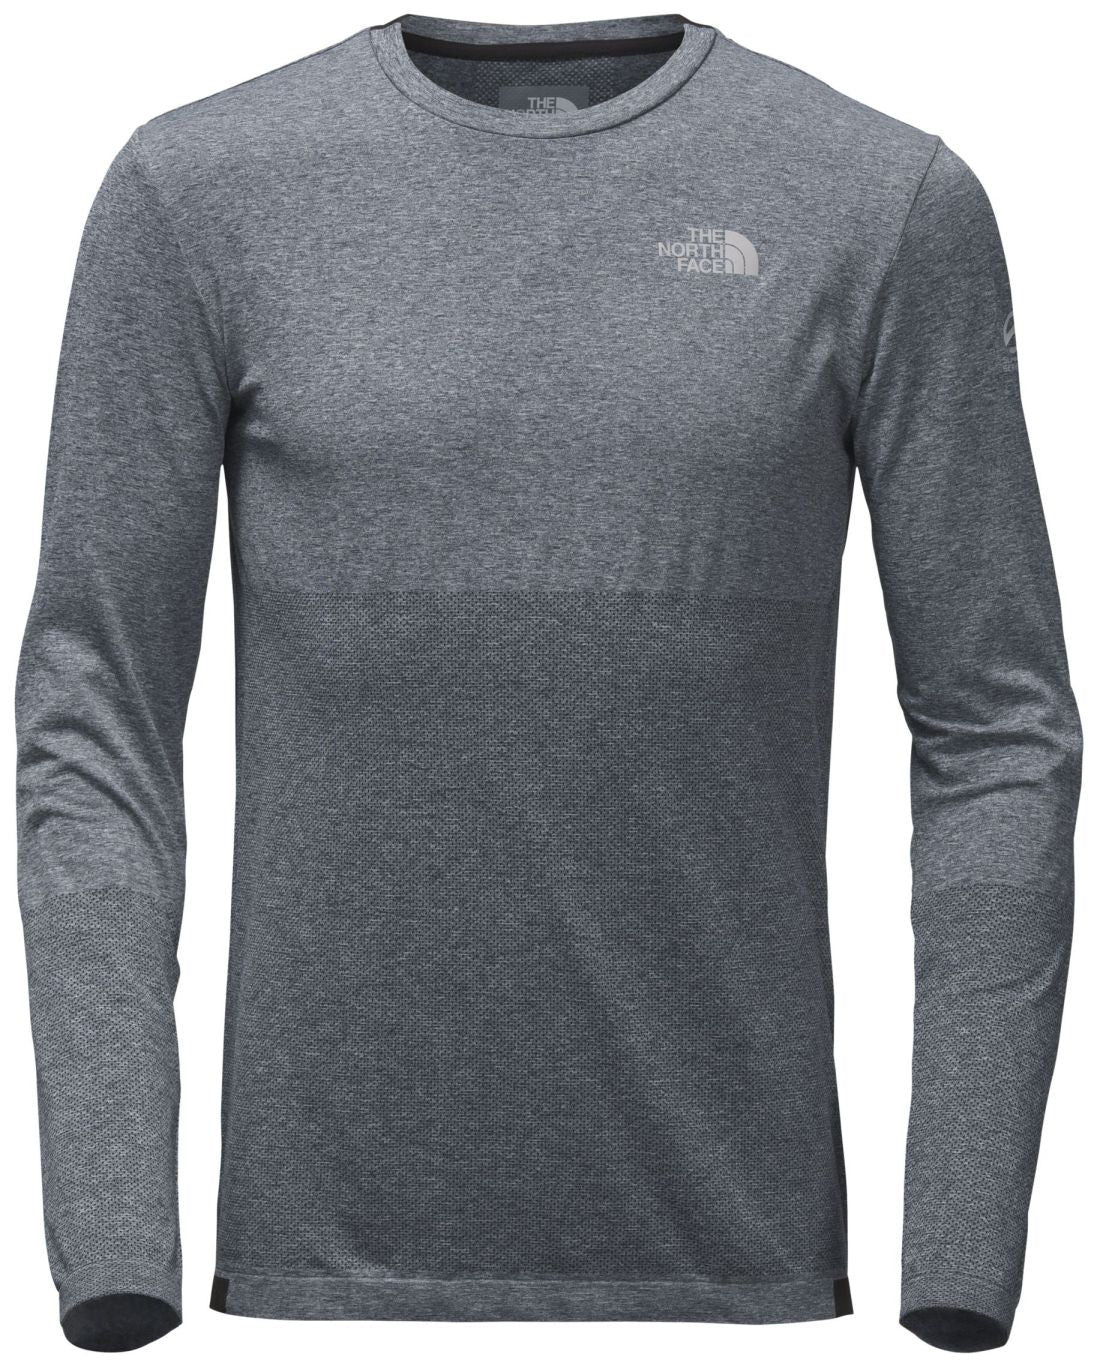 The North Face Summit L1 Engineered LS Top - Men's